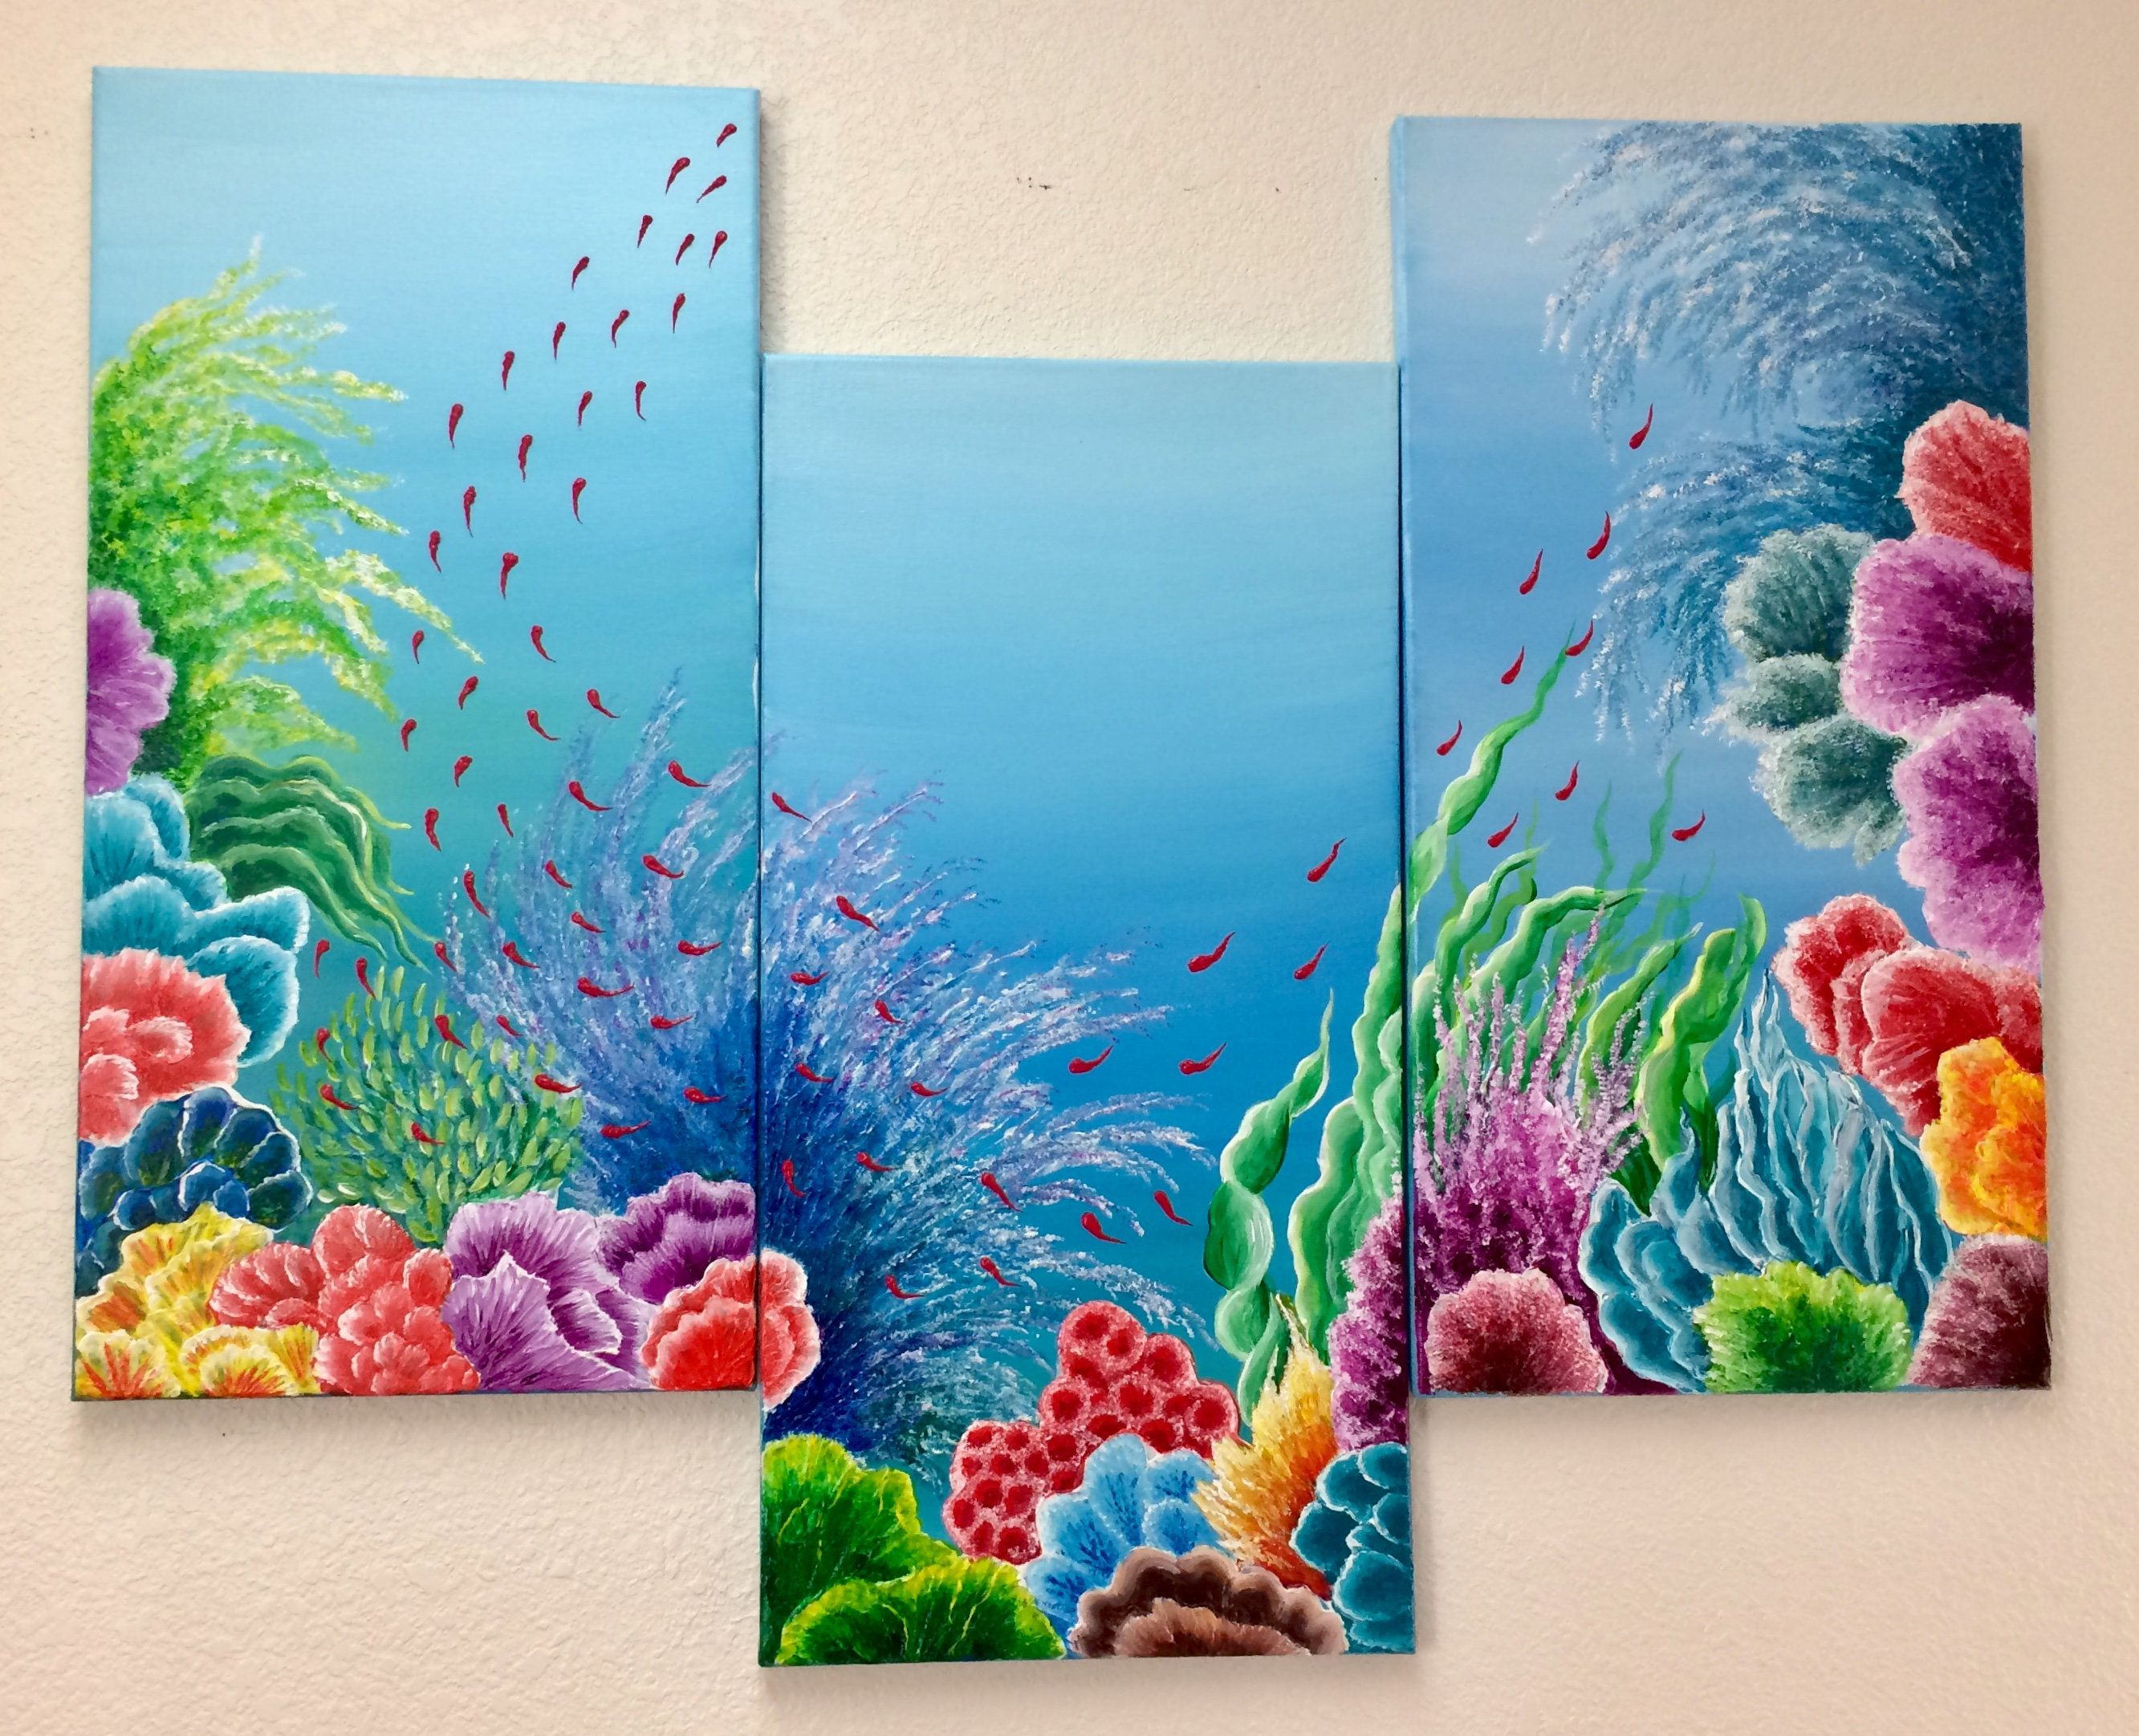 Original Acrylic Painting Abstract Painting Underwater Etsy Acrylic Painting Canvas Coral Painting Abstract Painting